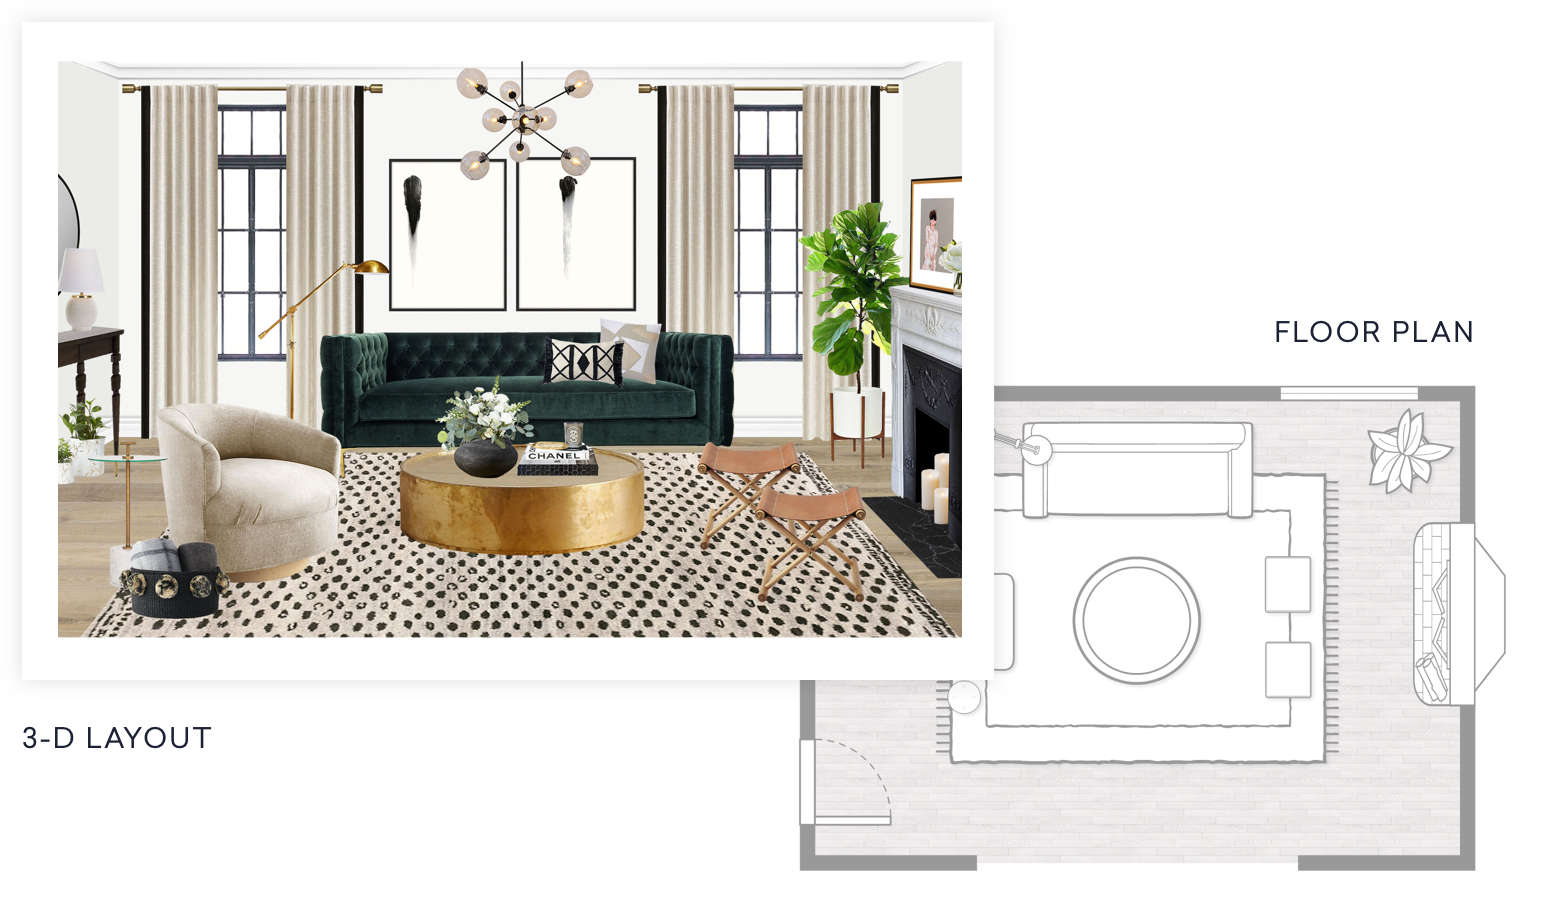 Interior design of home pictures - An Example 3 D Layout And Floor Plan Built By An Interior Designer